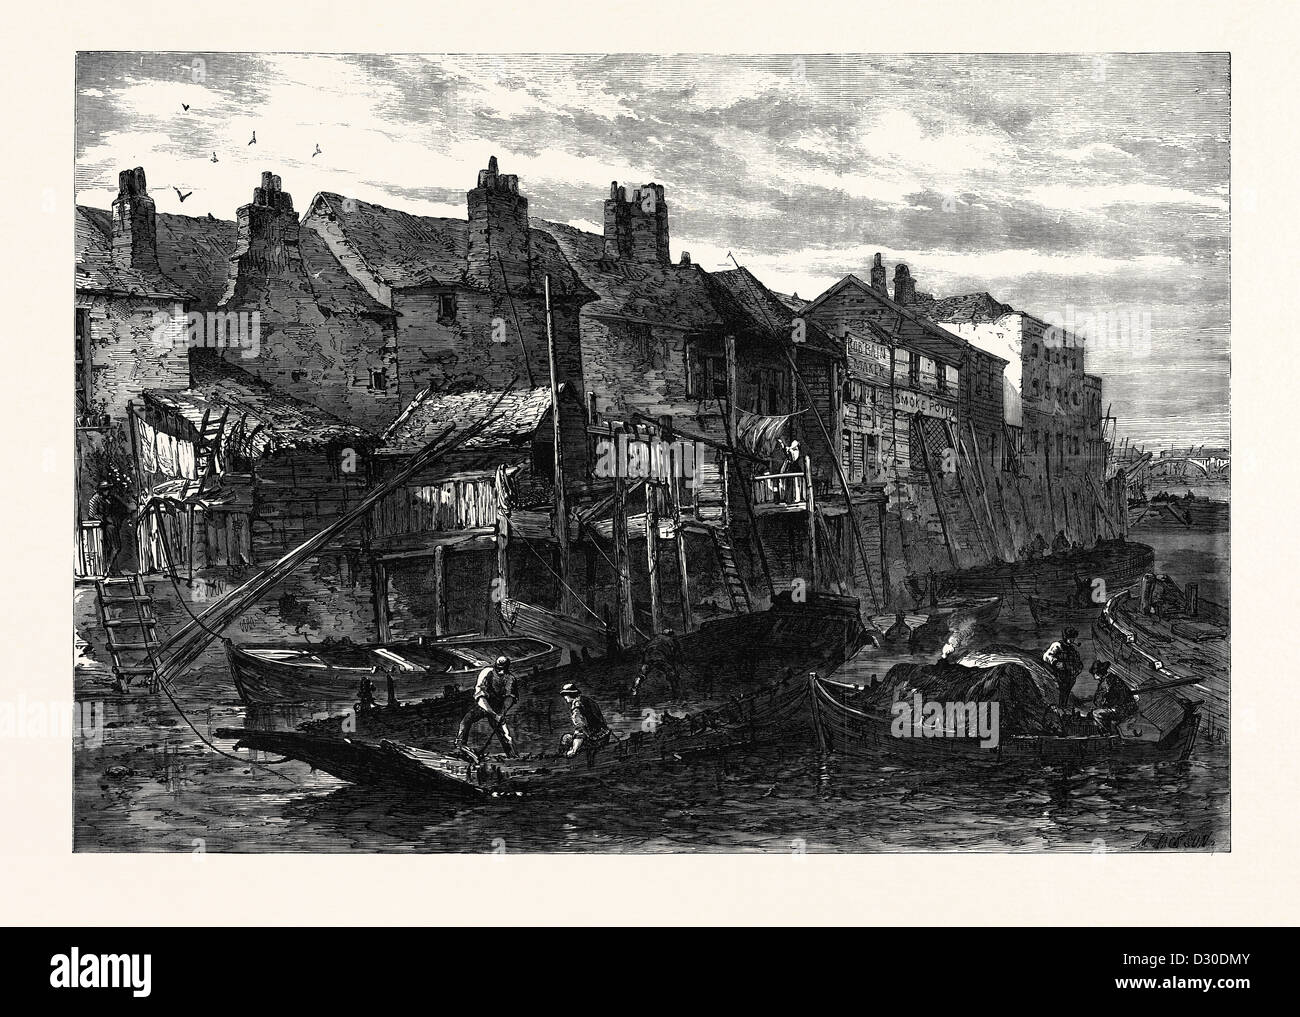 OLD HOUSES AT LAMBETH DEMOLISHED FOR THE SOUTHERN EMBANKMENT OF THE THAMES LONDON UK 1867 Stock Photo